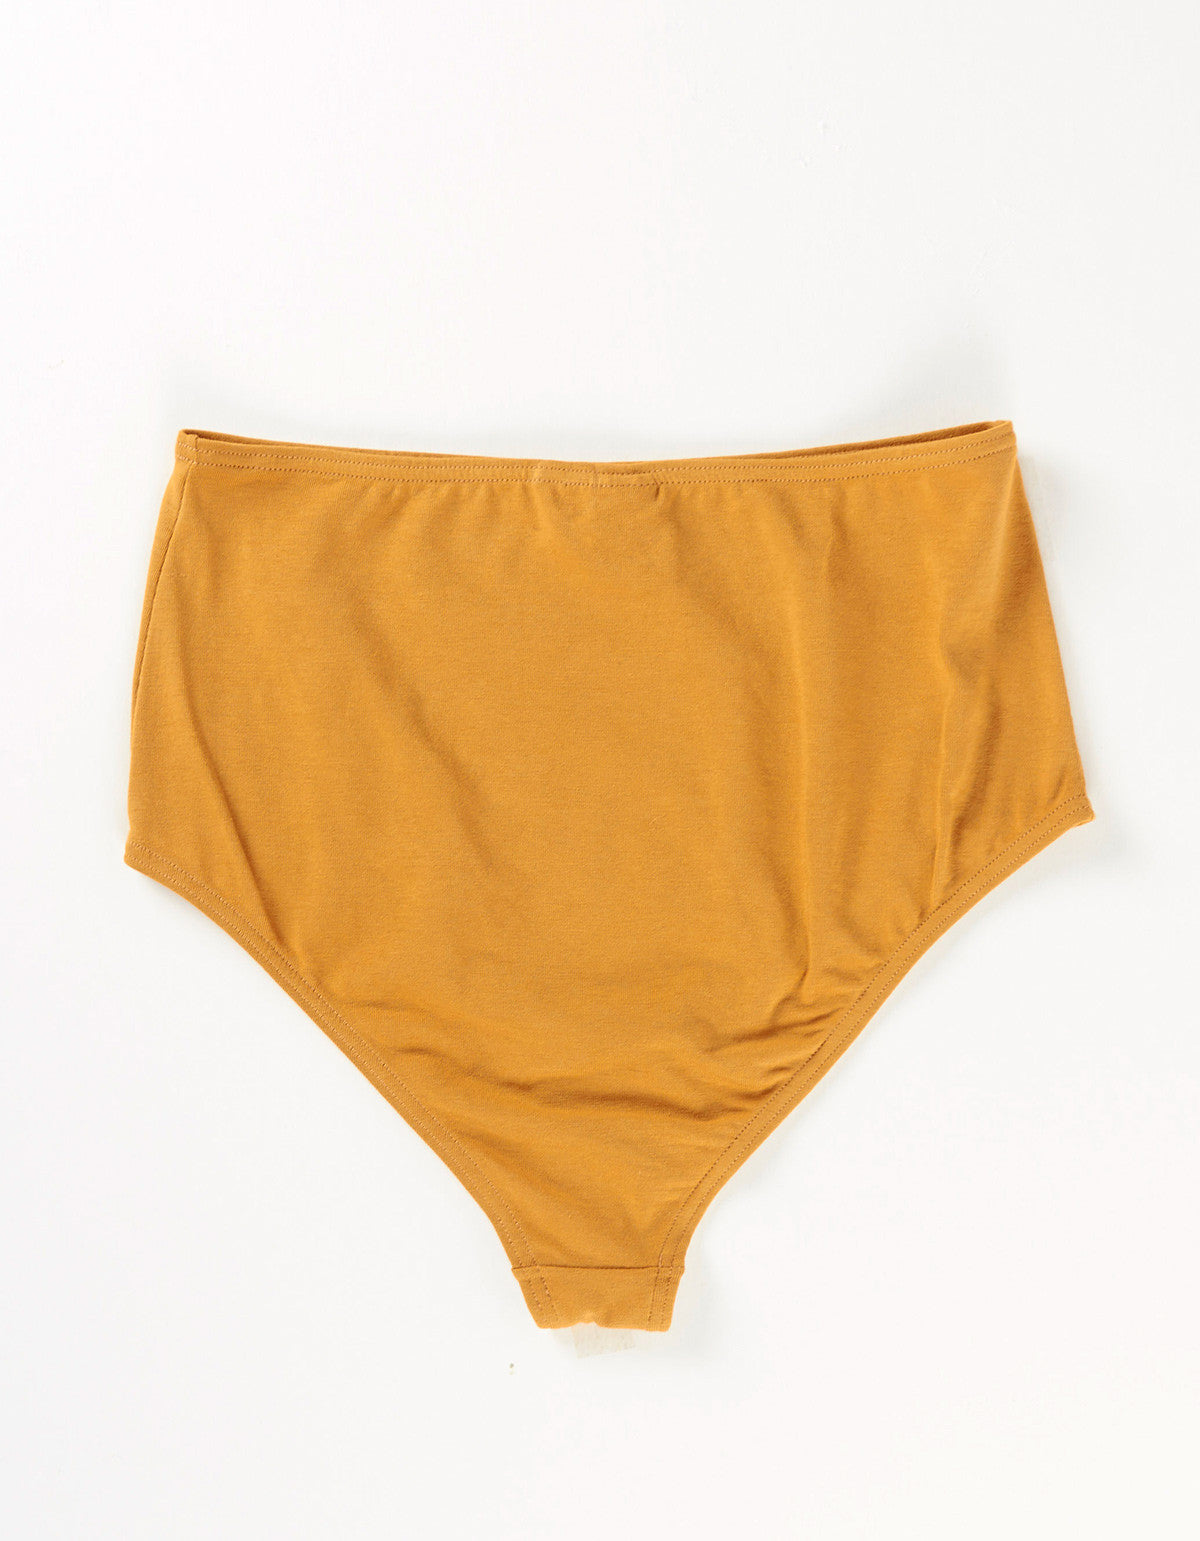 The Nude Label High Waisted Brief Caramel - Still Life - 2